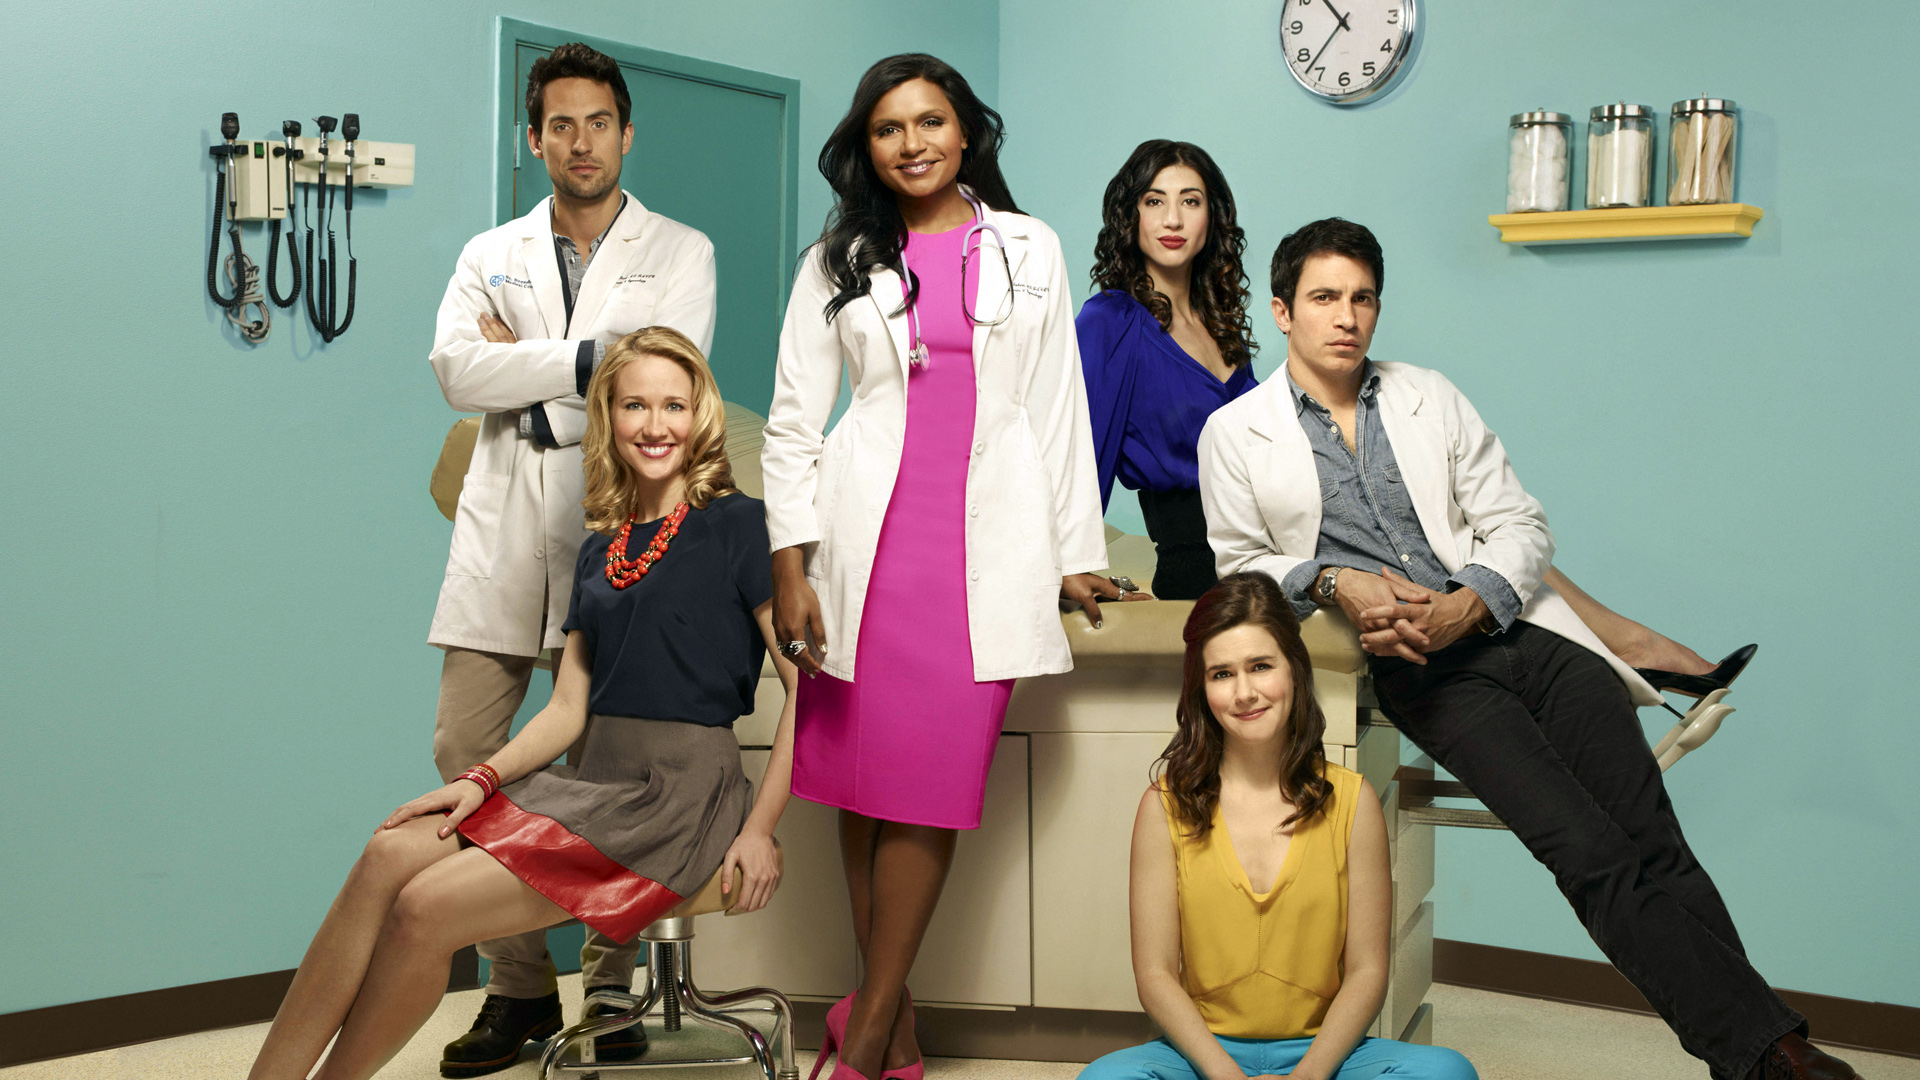 Serie 1: The Mindy Project